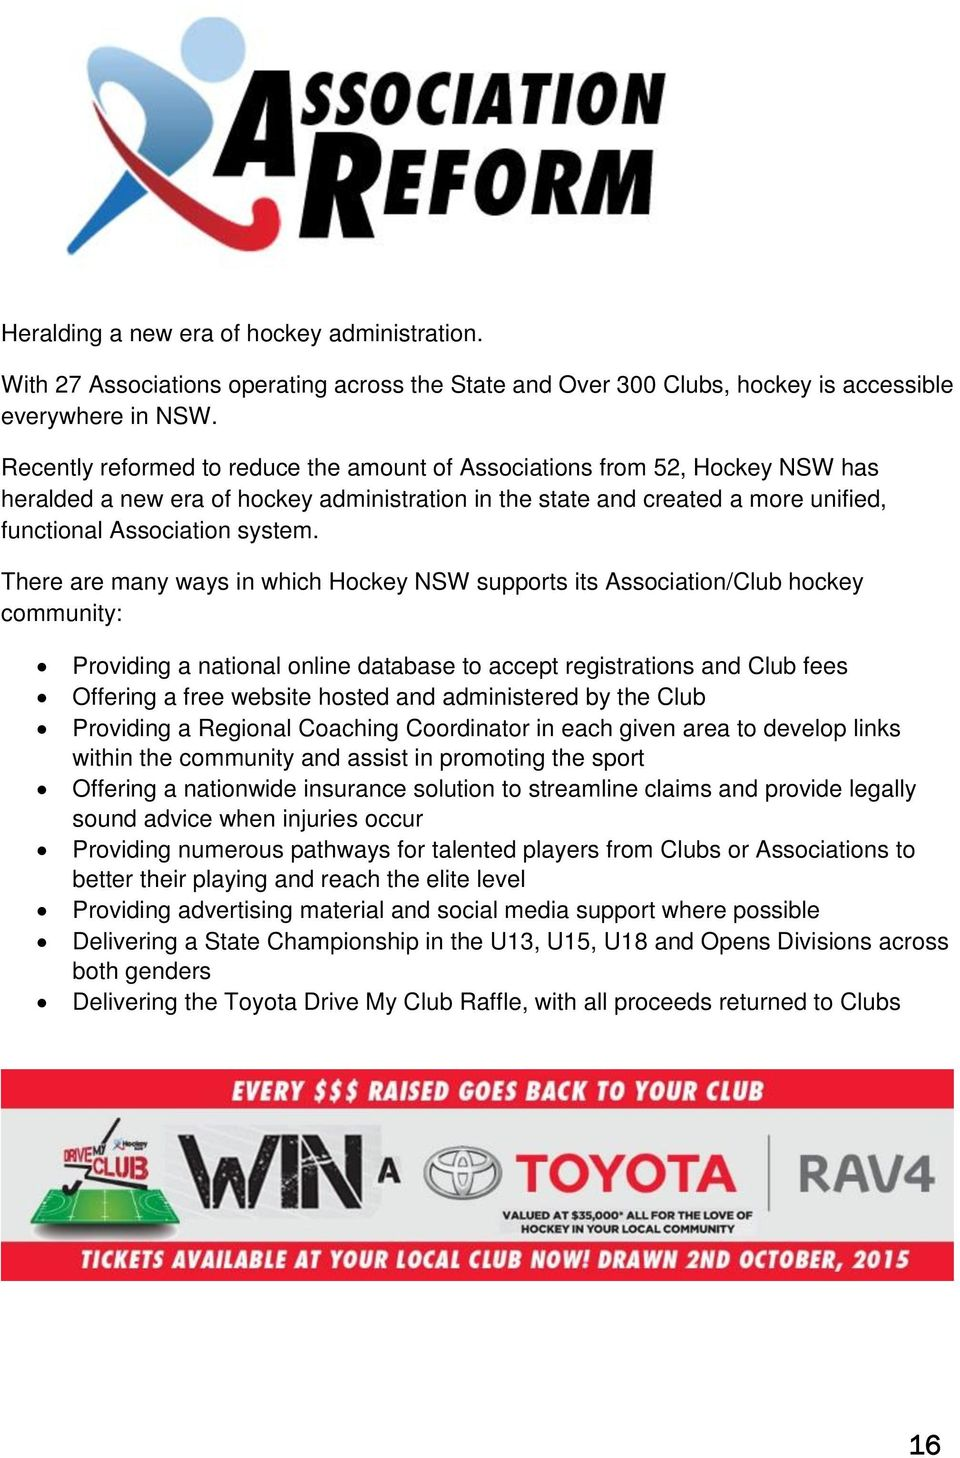 There are many ways in which Hockey NSW supports its Association/Club hockey community: Providing a national online database to accept registrations and Club fees Offering a free website hosted and